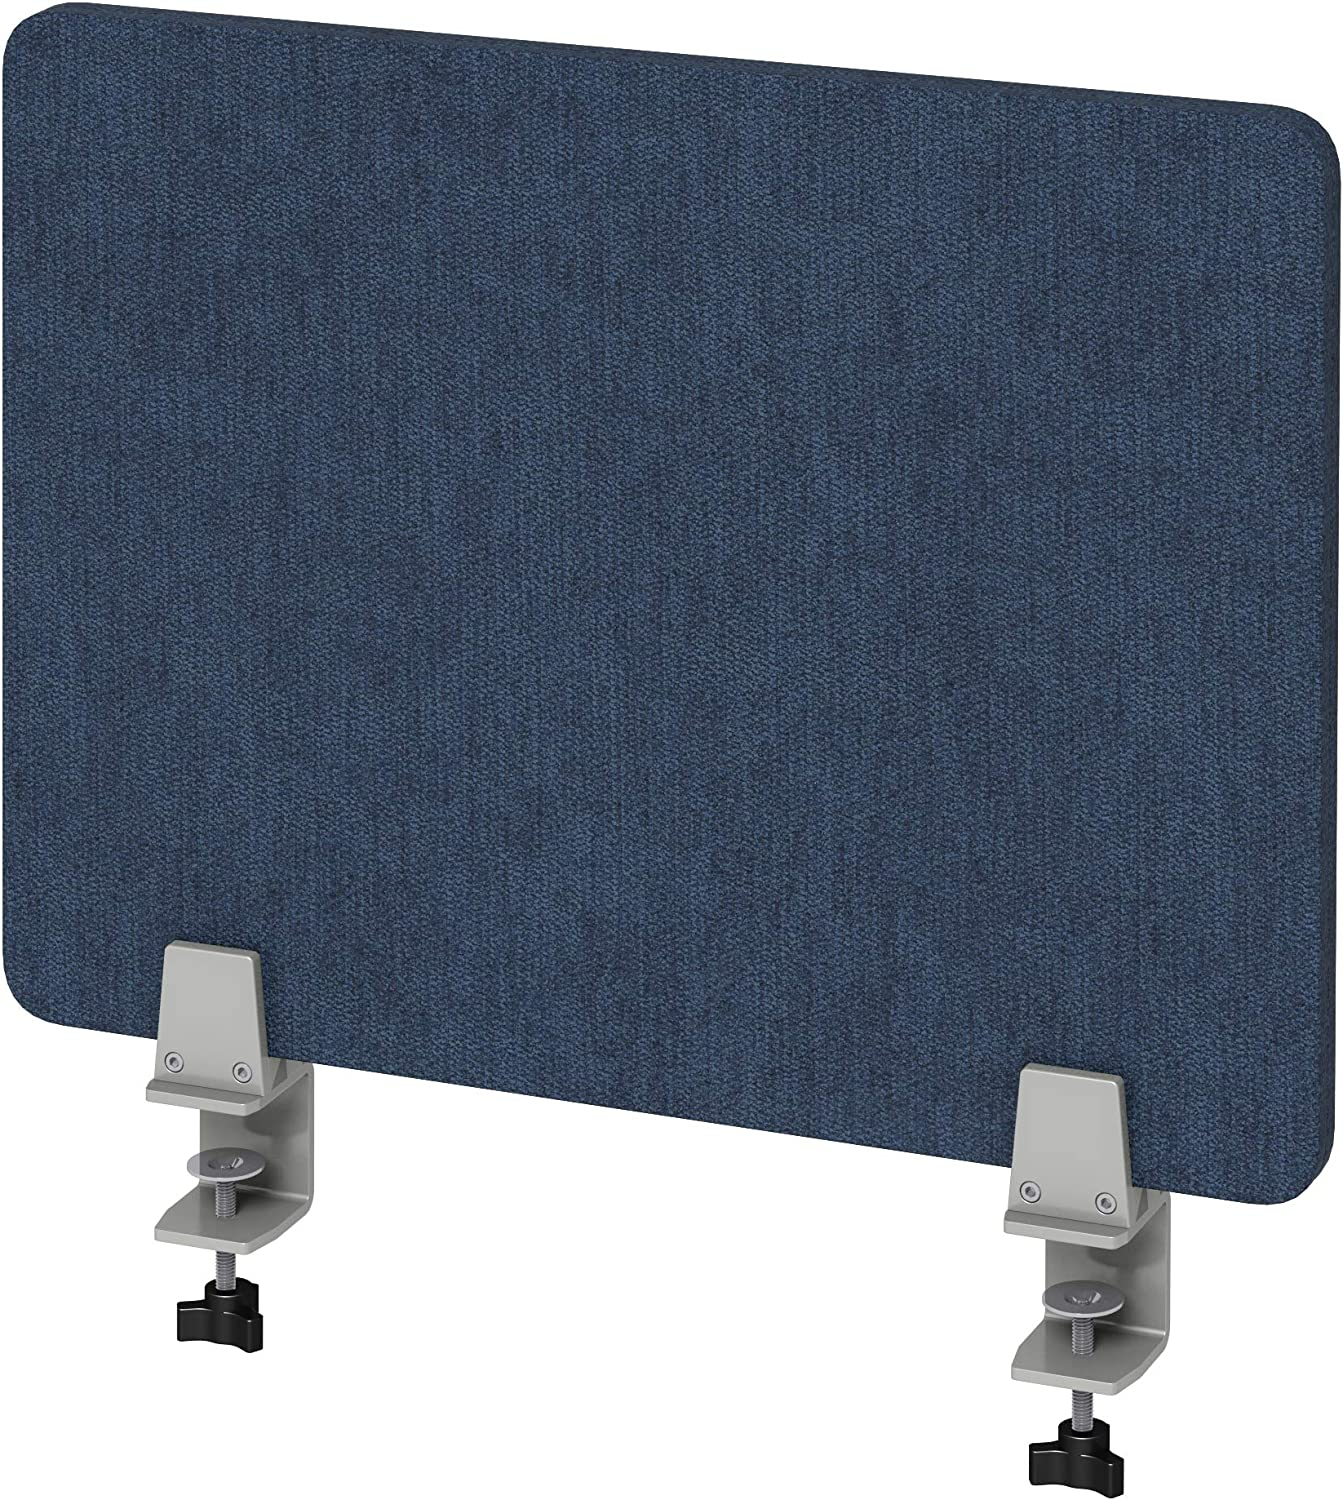 "VaRoom Acoustic Desktop Privacy Divider, 23""W x 18"" H Sound Absorbing Clamp-on Cubicle Desk Divider Partition Panel in Dark Blue Tackable Fabric"